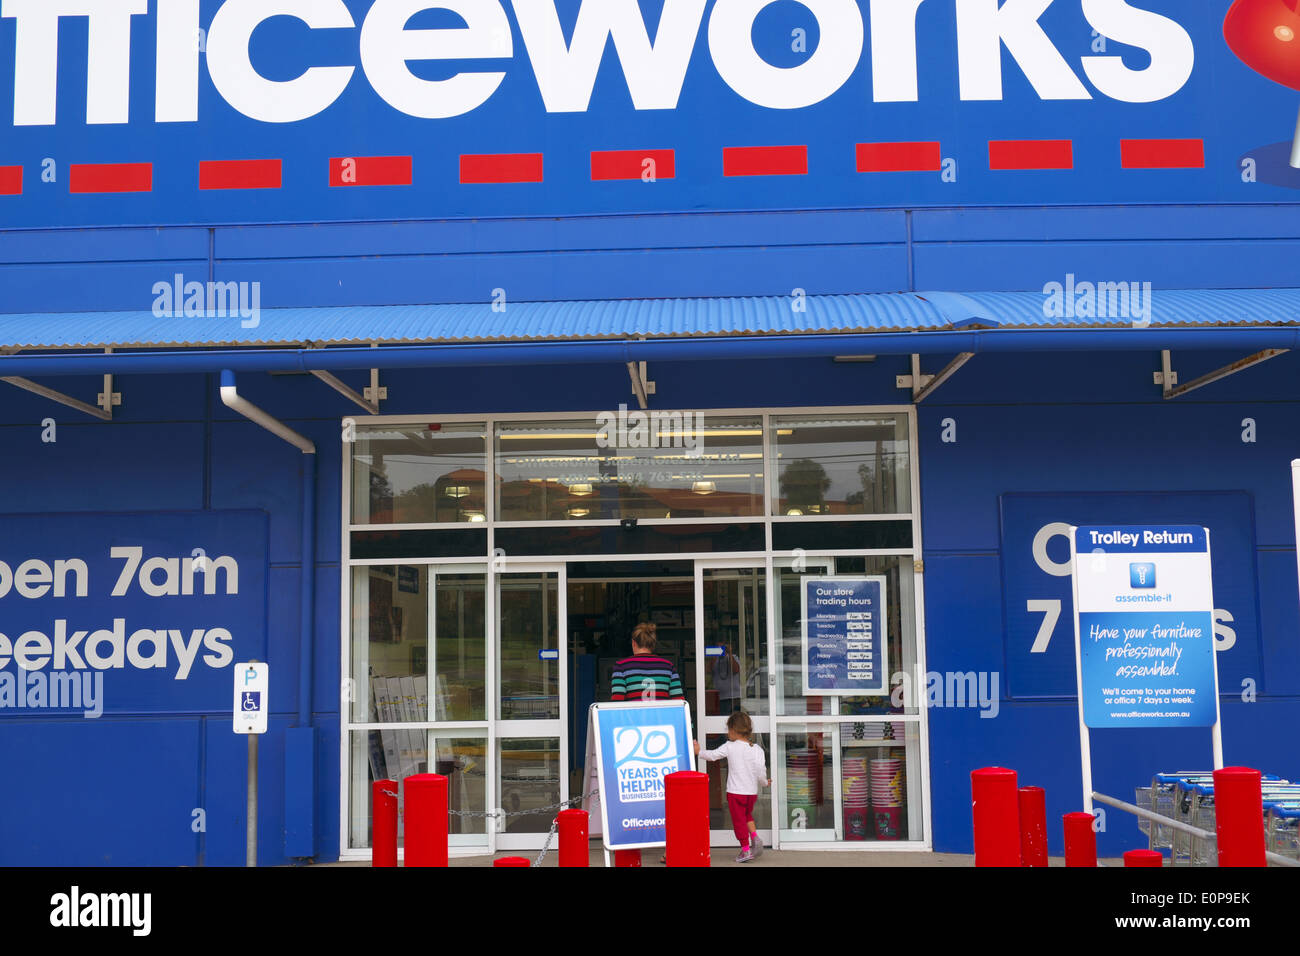 officeworks an australian national chain of office supplies stores